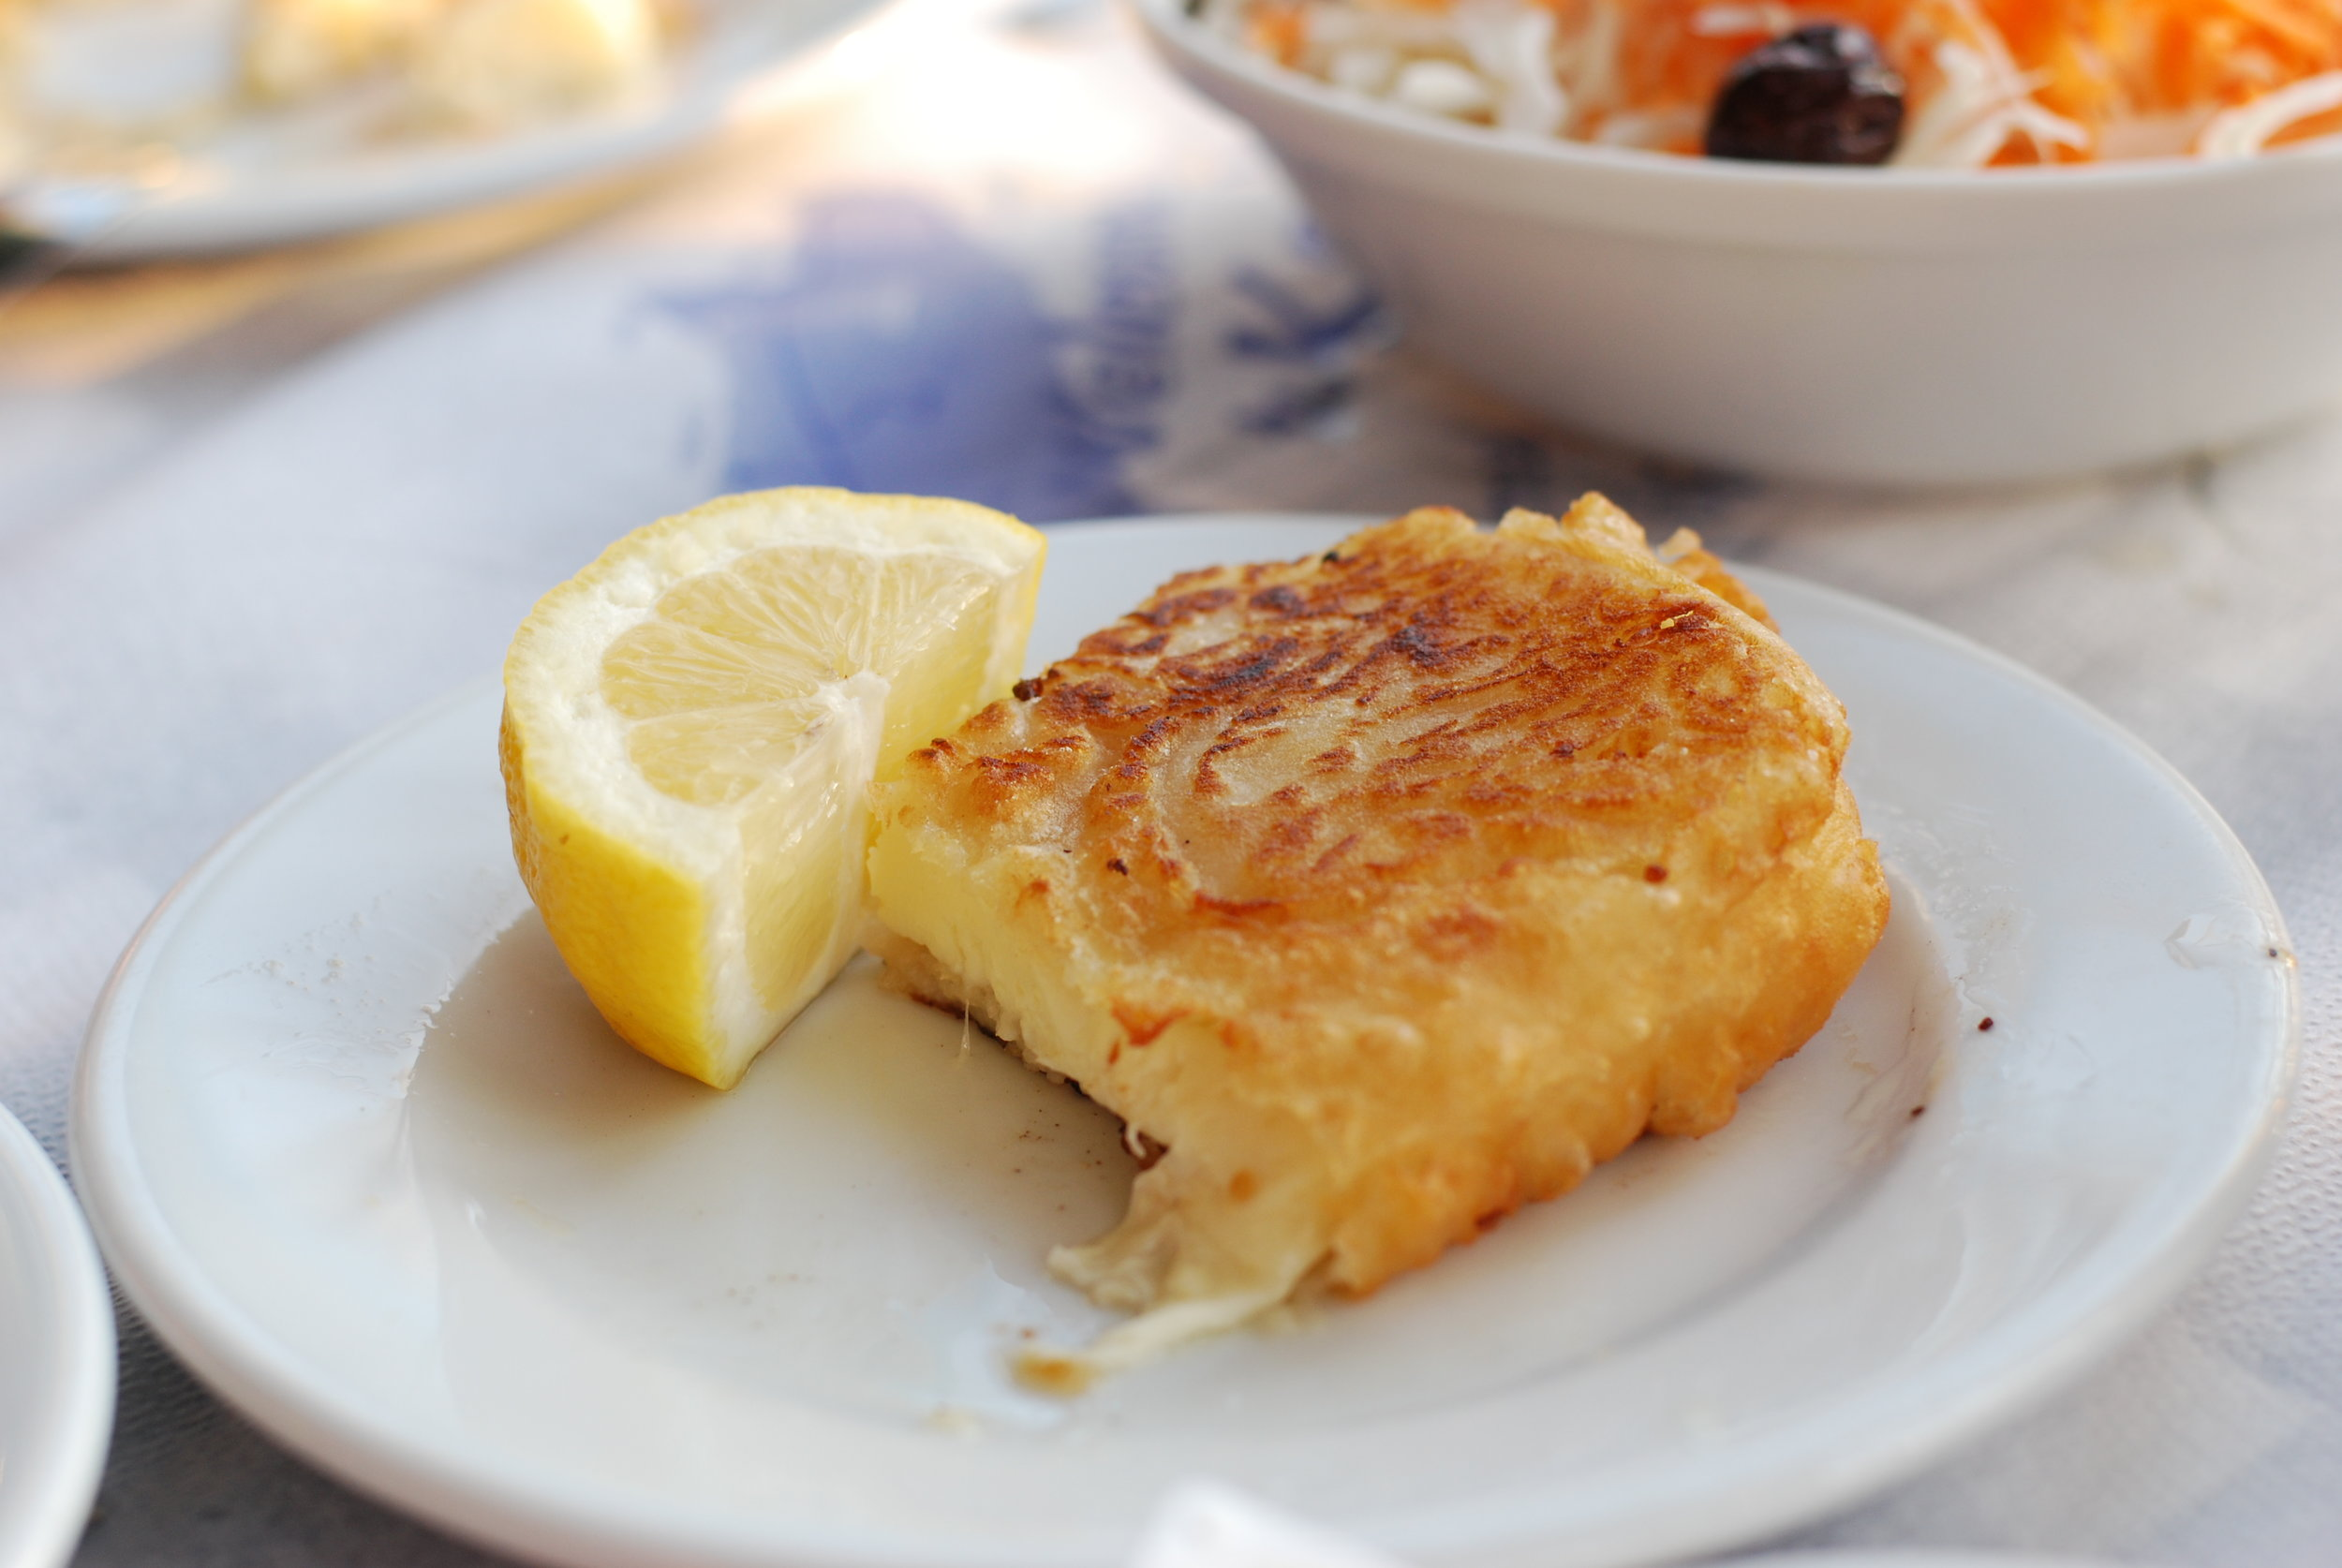 One of the best dishes in the 'Greek food hall of fame', the saganaki fried cheese (Picture by Merle ja Joonas / Flickr)